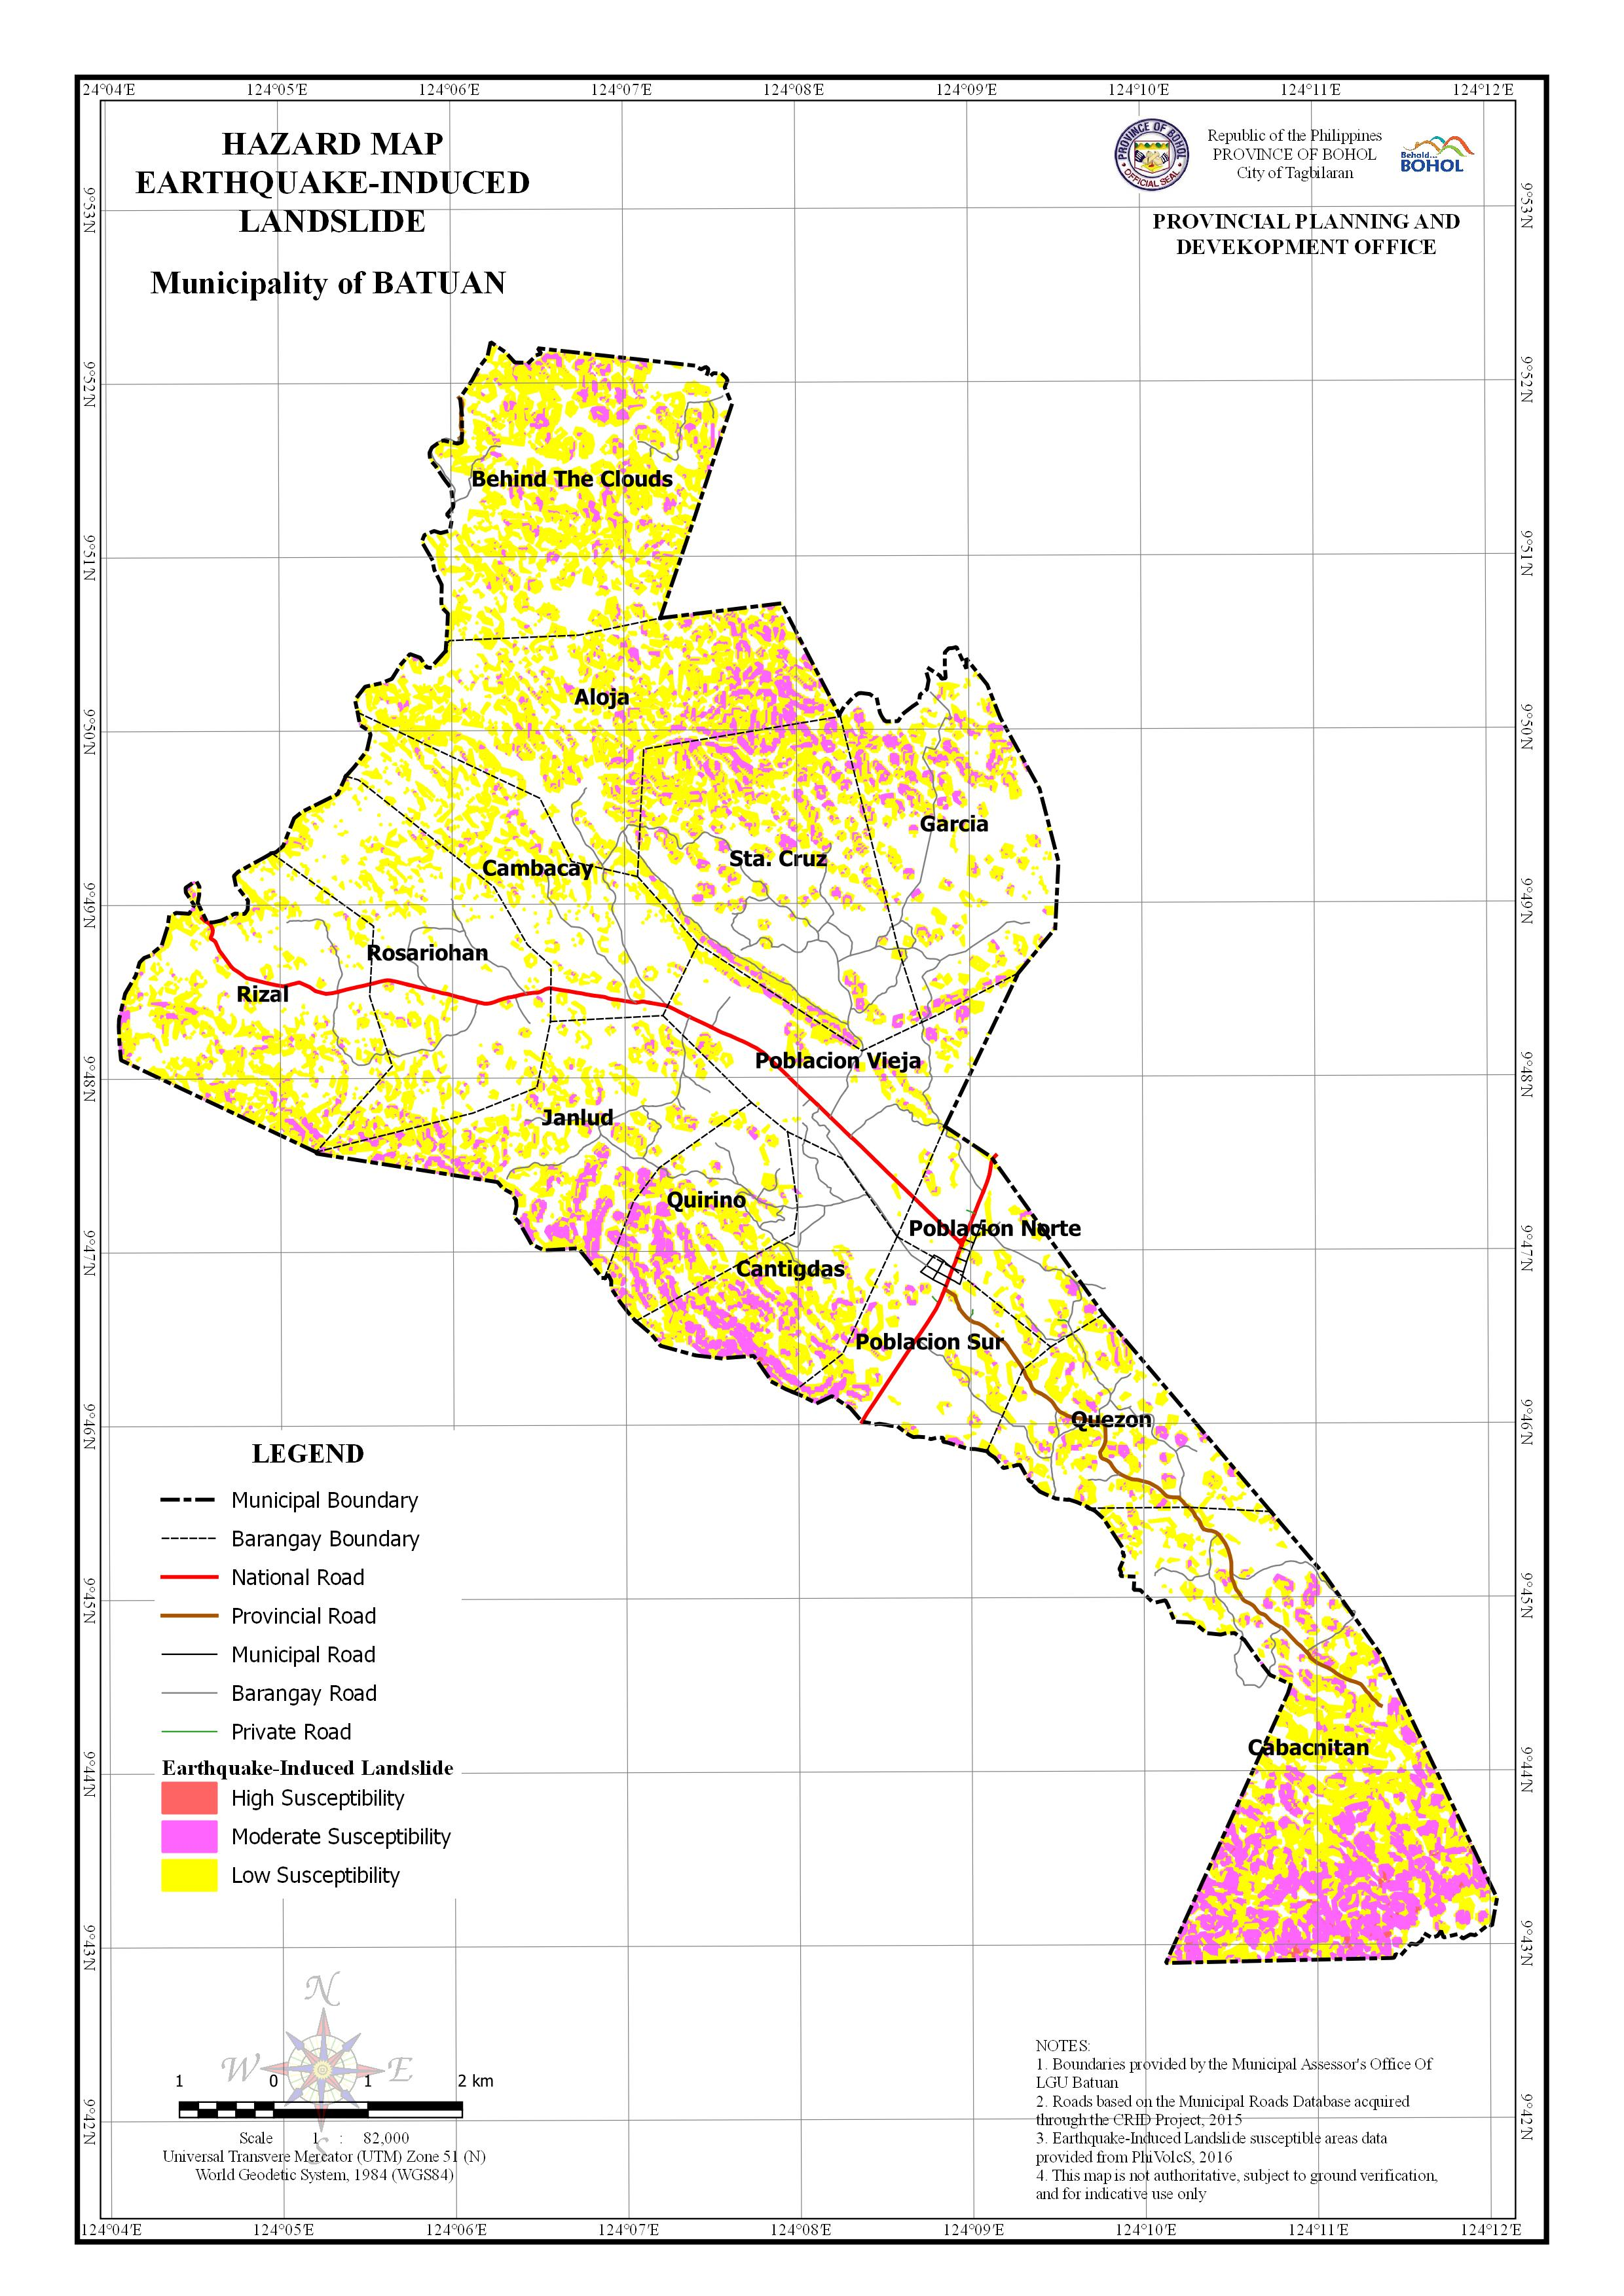 Earthquake-Induced Landslide Map